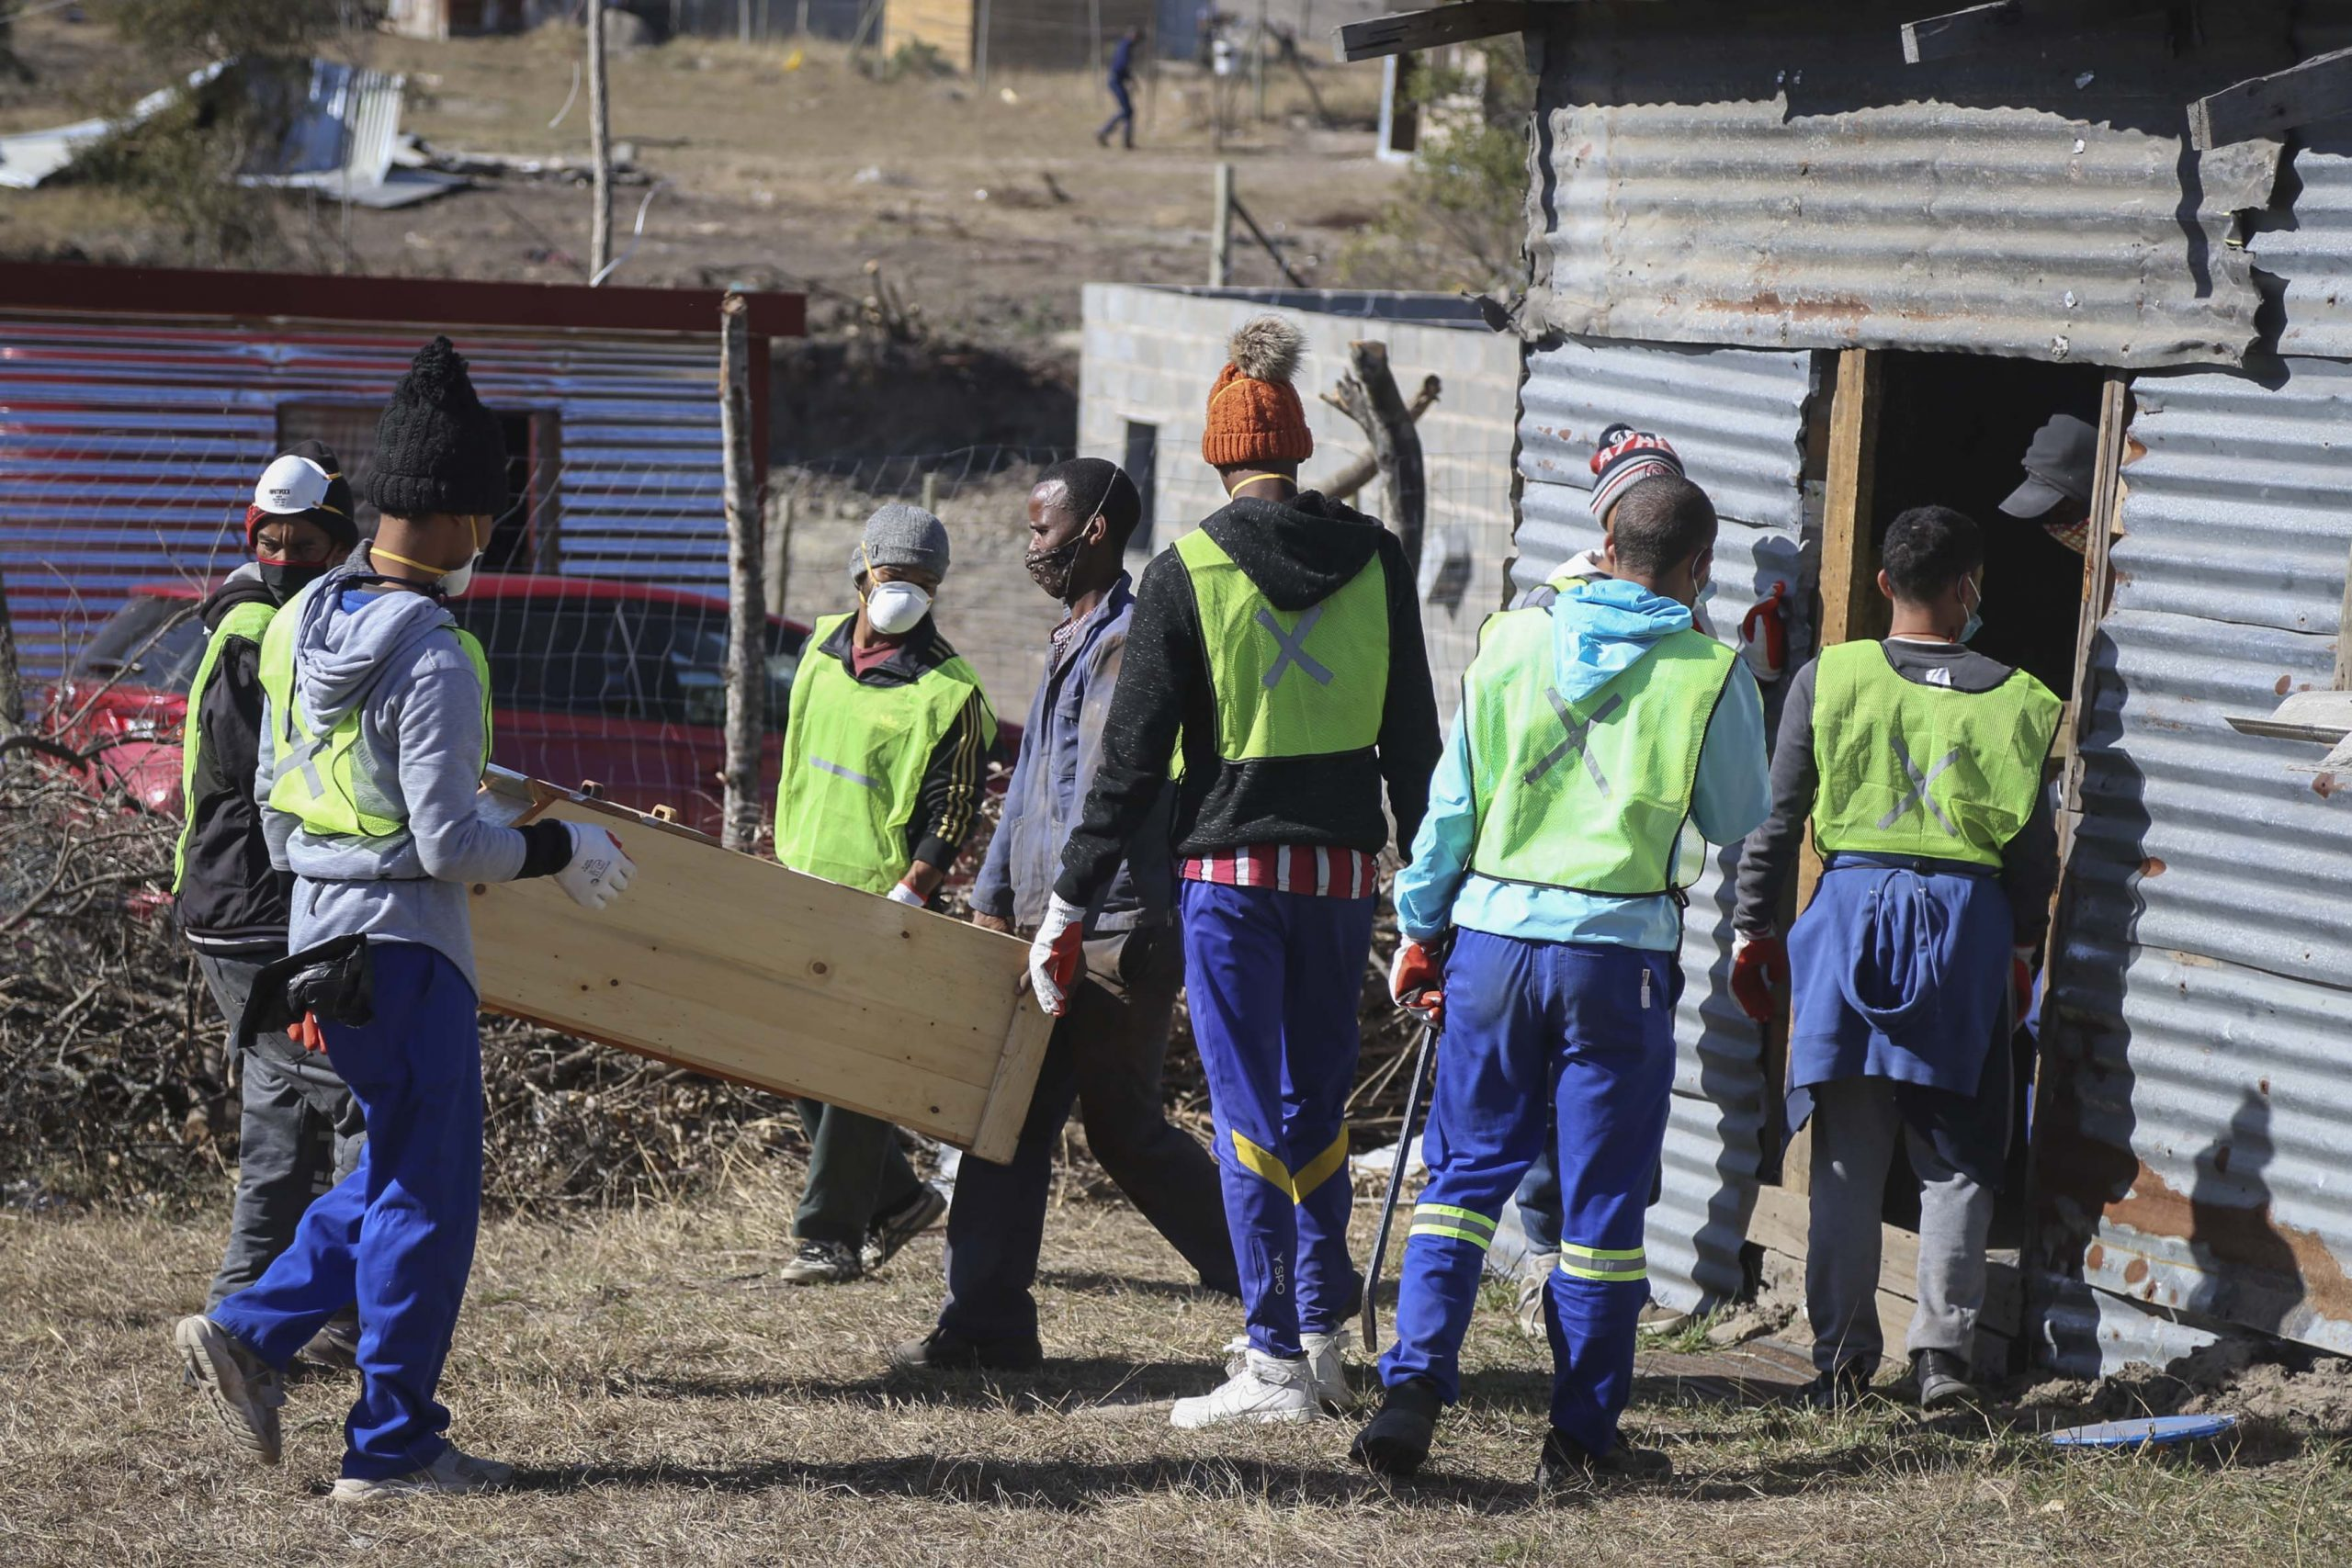 27 July 2020: Buffalo City Metro Municipality workers and a resident carry out benches from a structure used as the Zion Christian Church.